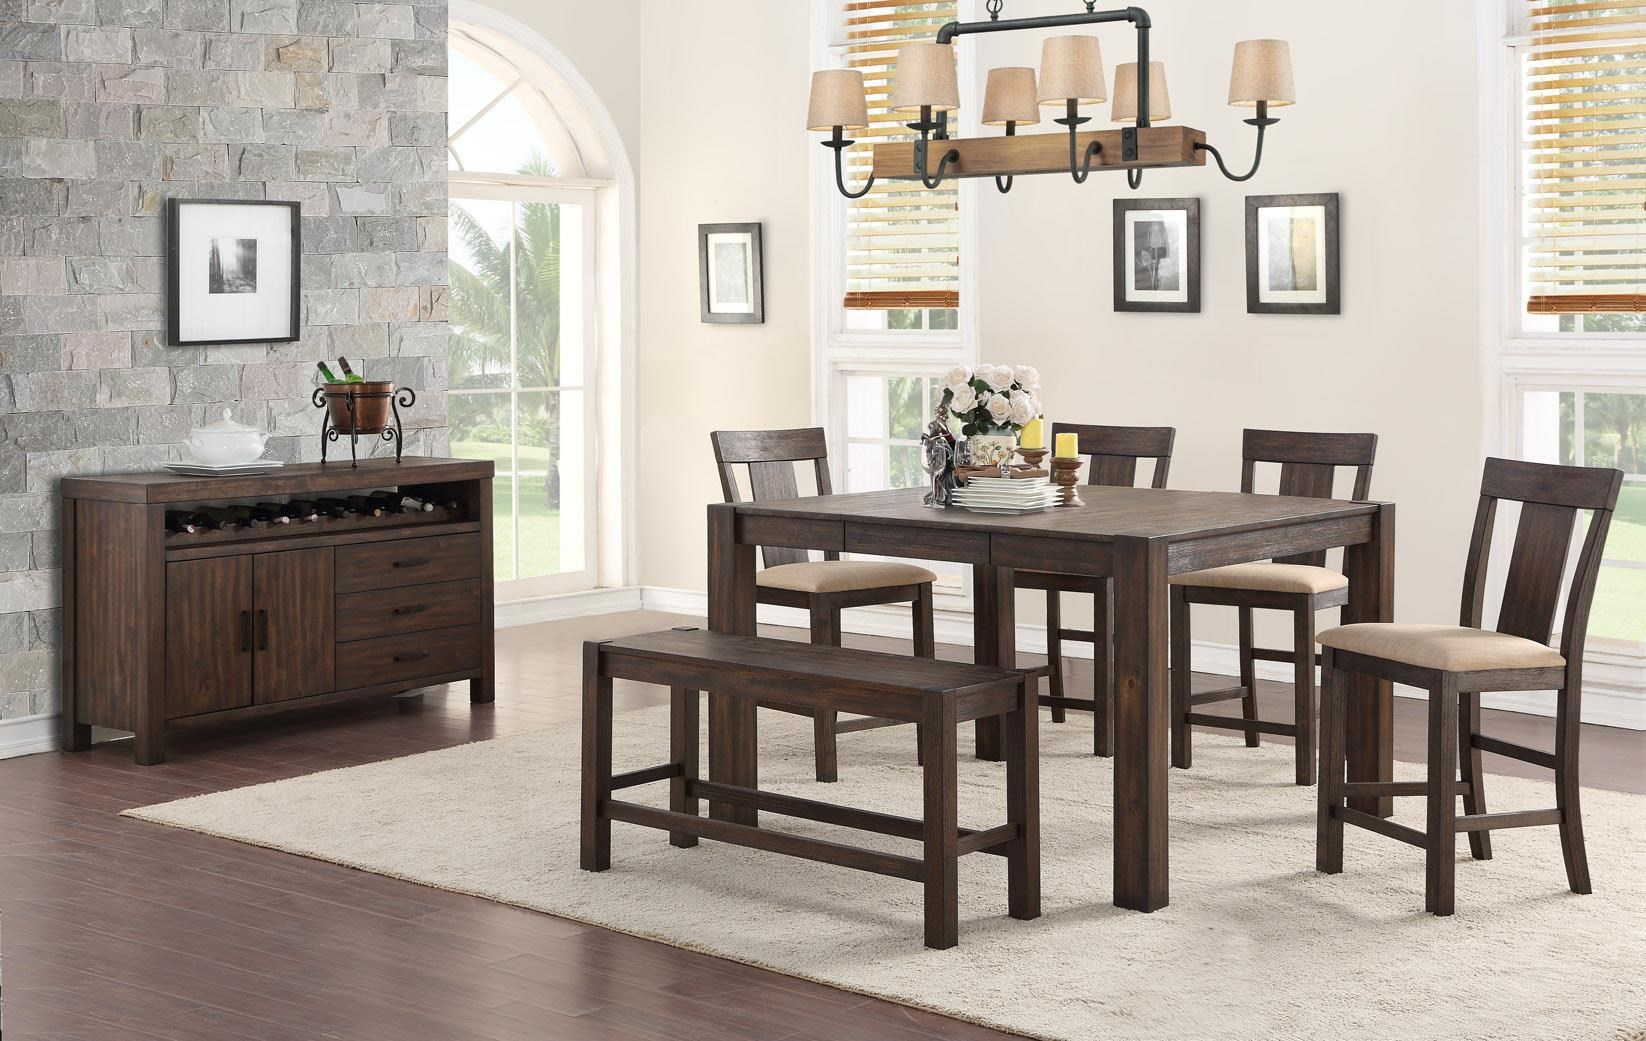 Tyler 6 Pc. Dining Set by HH at Walker's Furniture